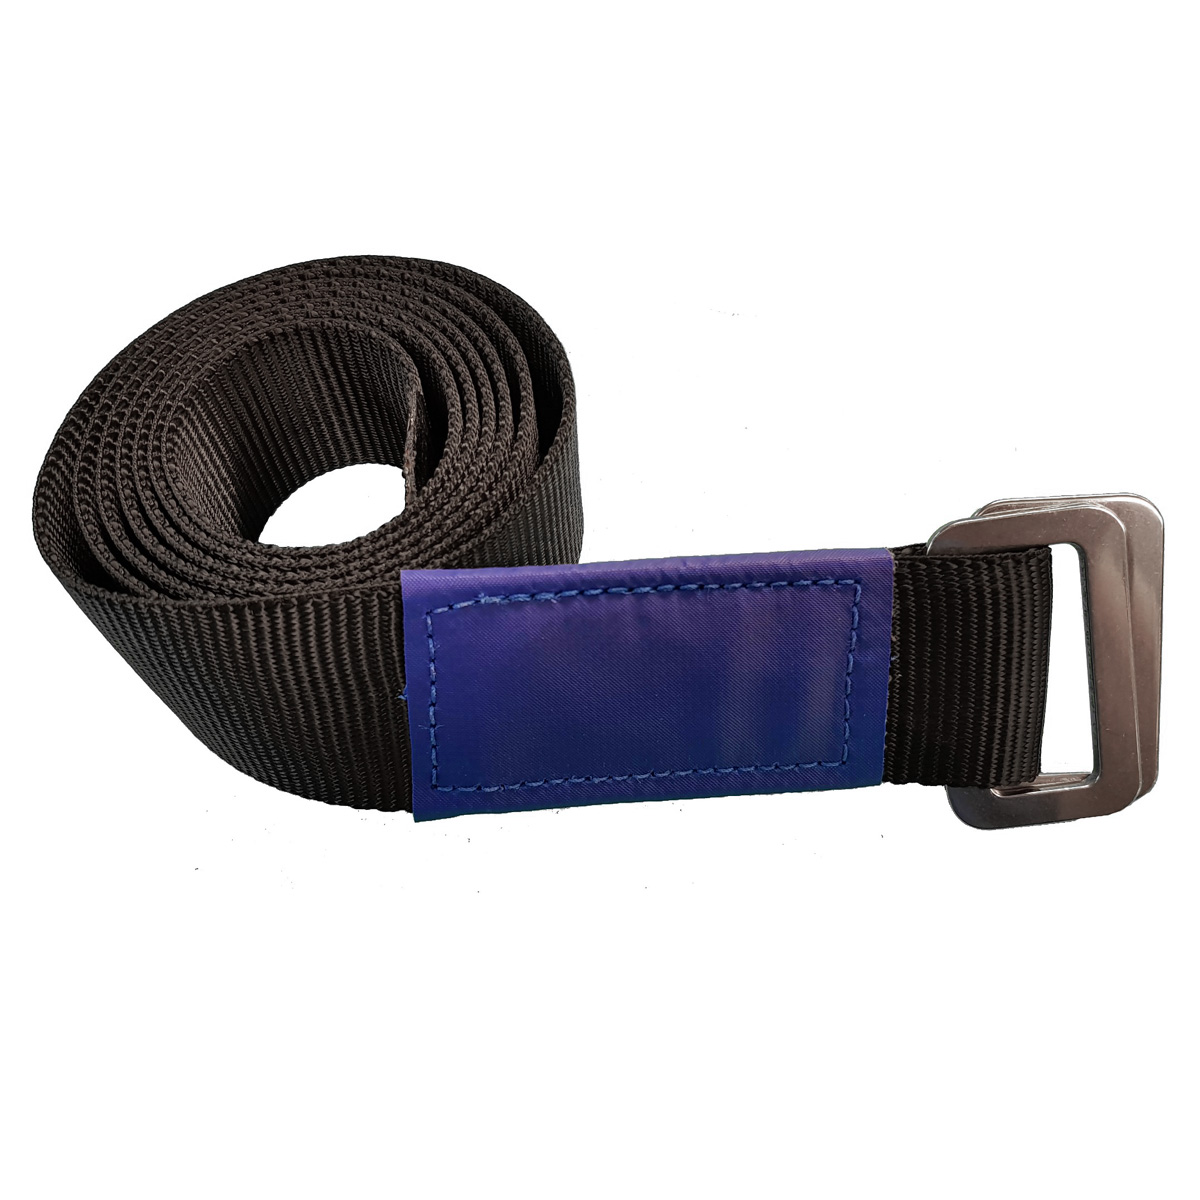 Warmbac Caving Belt Square Buckle